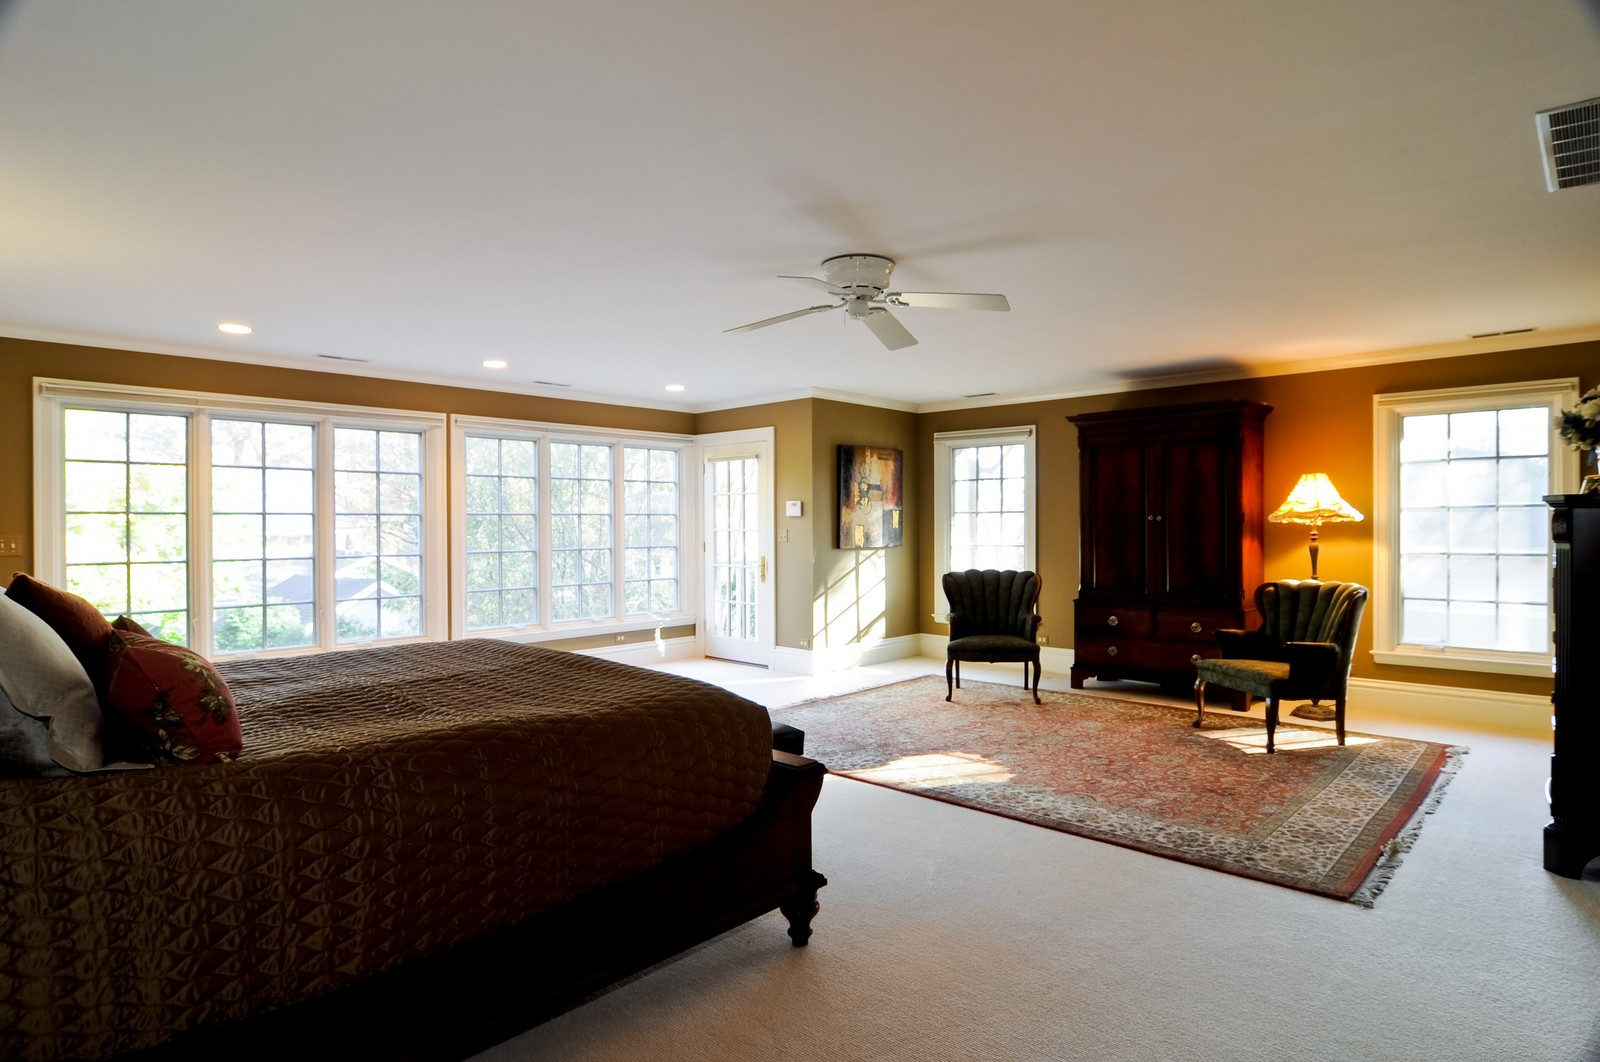 Real Estate Photography - 685 N. Forest Avenue, Glen Ellyn, IL, 60137 - Master Bedroom